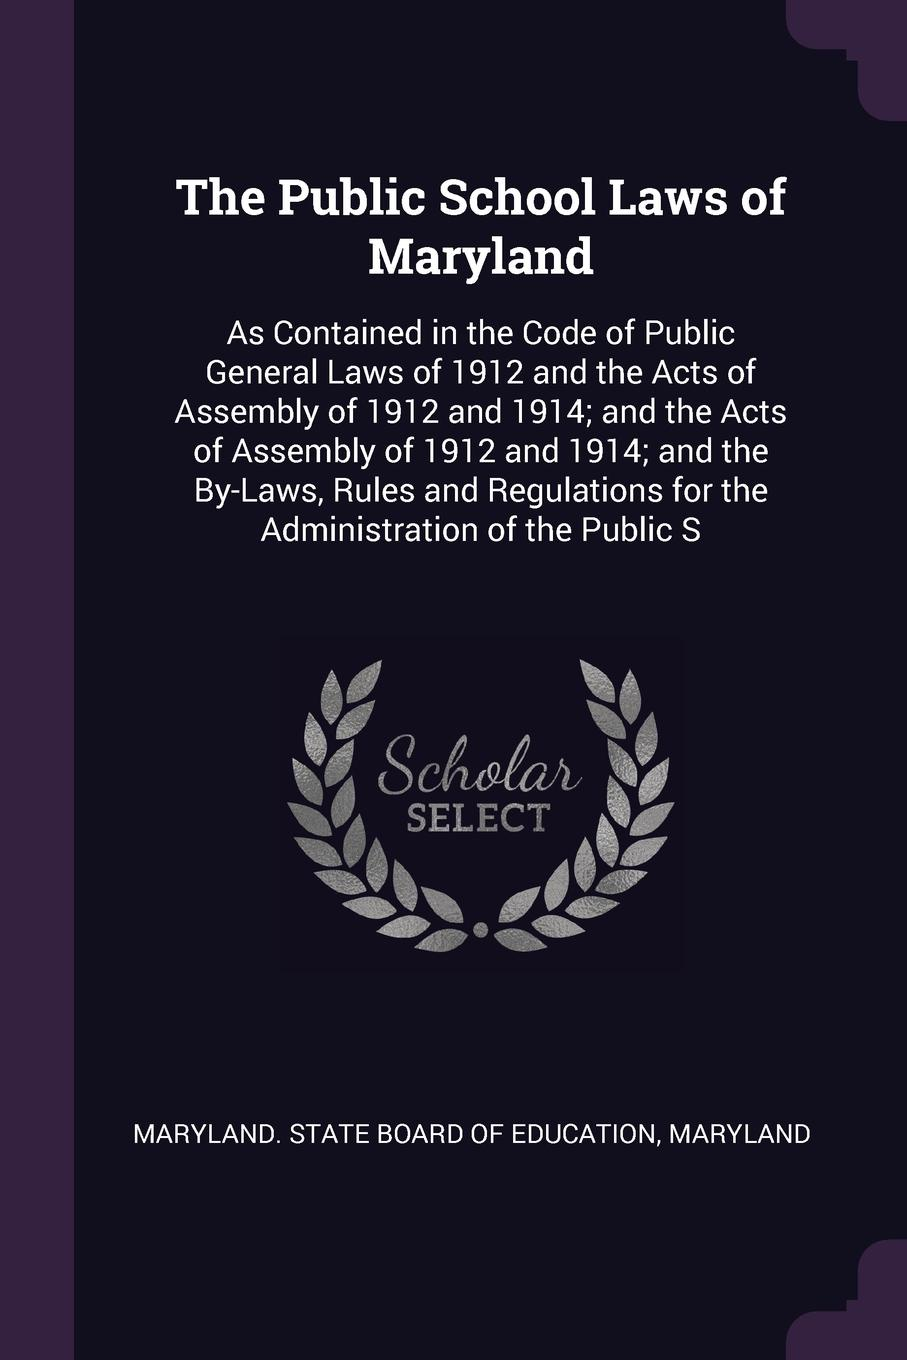 цена на Maryland The Public School Laws of Maryland. As Contained in the Code of Public General Laws of 1912 and the Acts of Assembly of 1912 and 1914; and the Acts of Assembly of 1912 and 1914; and the By-Laws, Rules and Regulations for the Administration of the ...